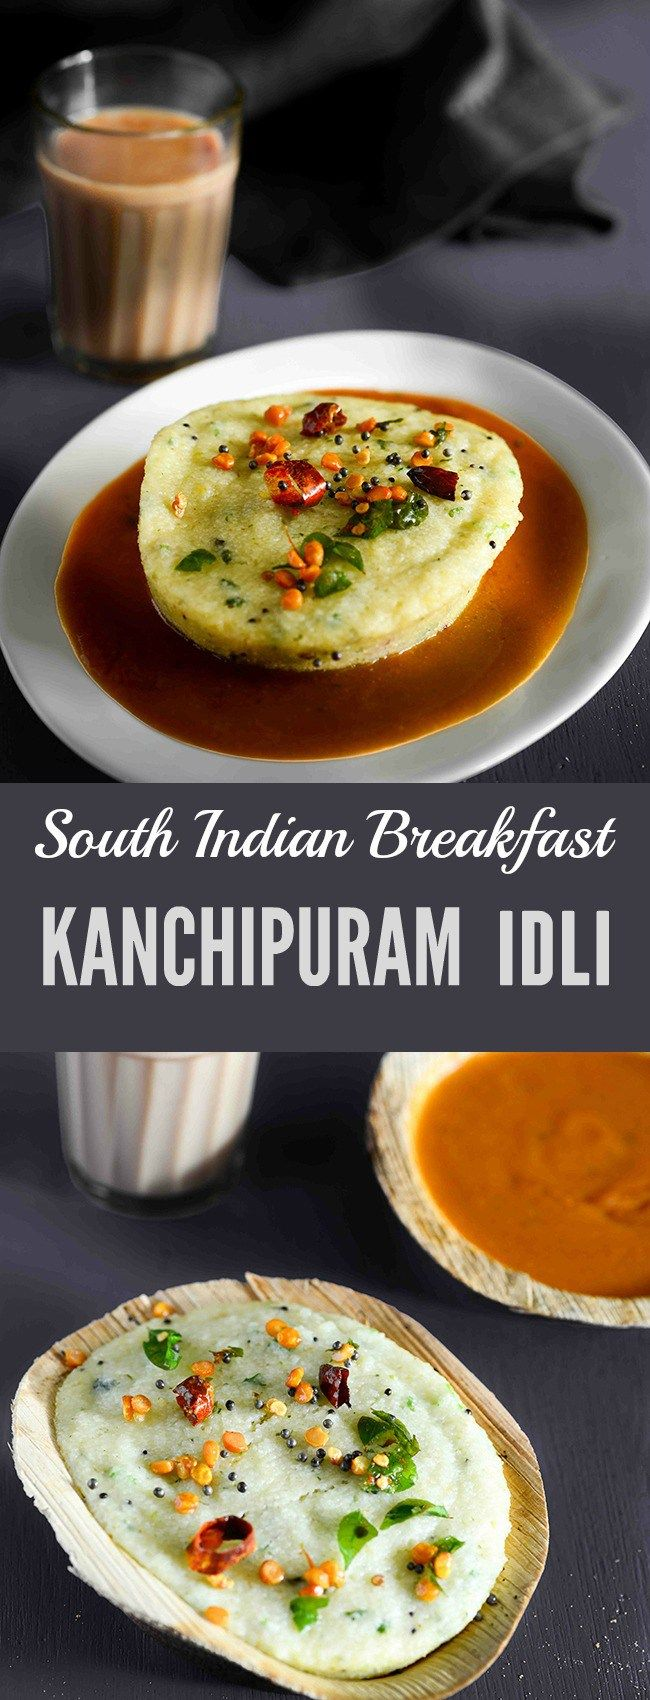 Kanchipuram Idli is almost like a masala Idli with a distinct flavour of cumin seeds , dry ginger, and black pepper. Another thing that adds to the flavour of Kanchipuram Idli is that it is steamed in dried mandharai leaves which adds a woody flavour. It is a South Indian breakfast with a slight variation from regular soft Idli, the texture of Kanchipuram Idli is also little denser than regular Idli